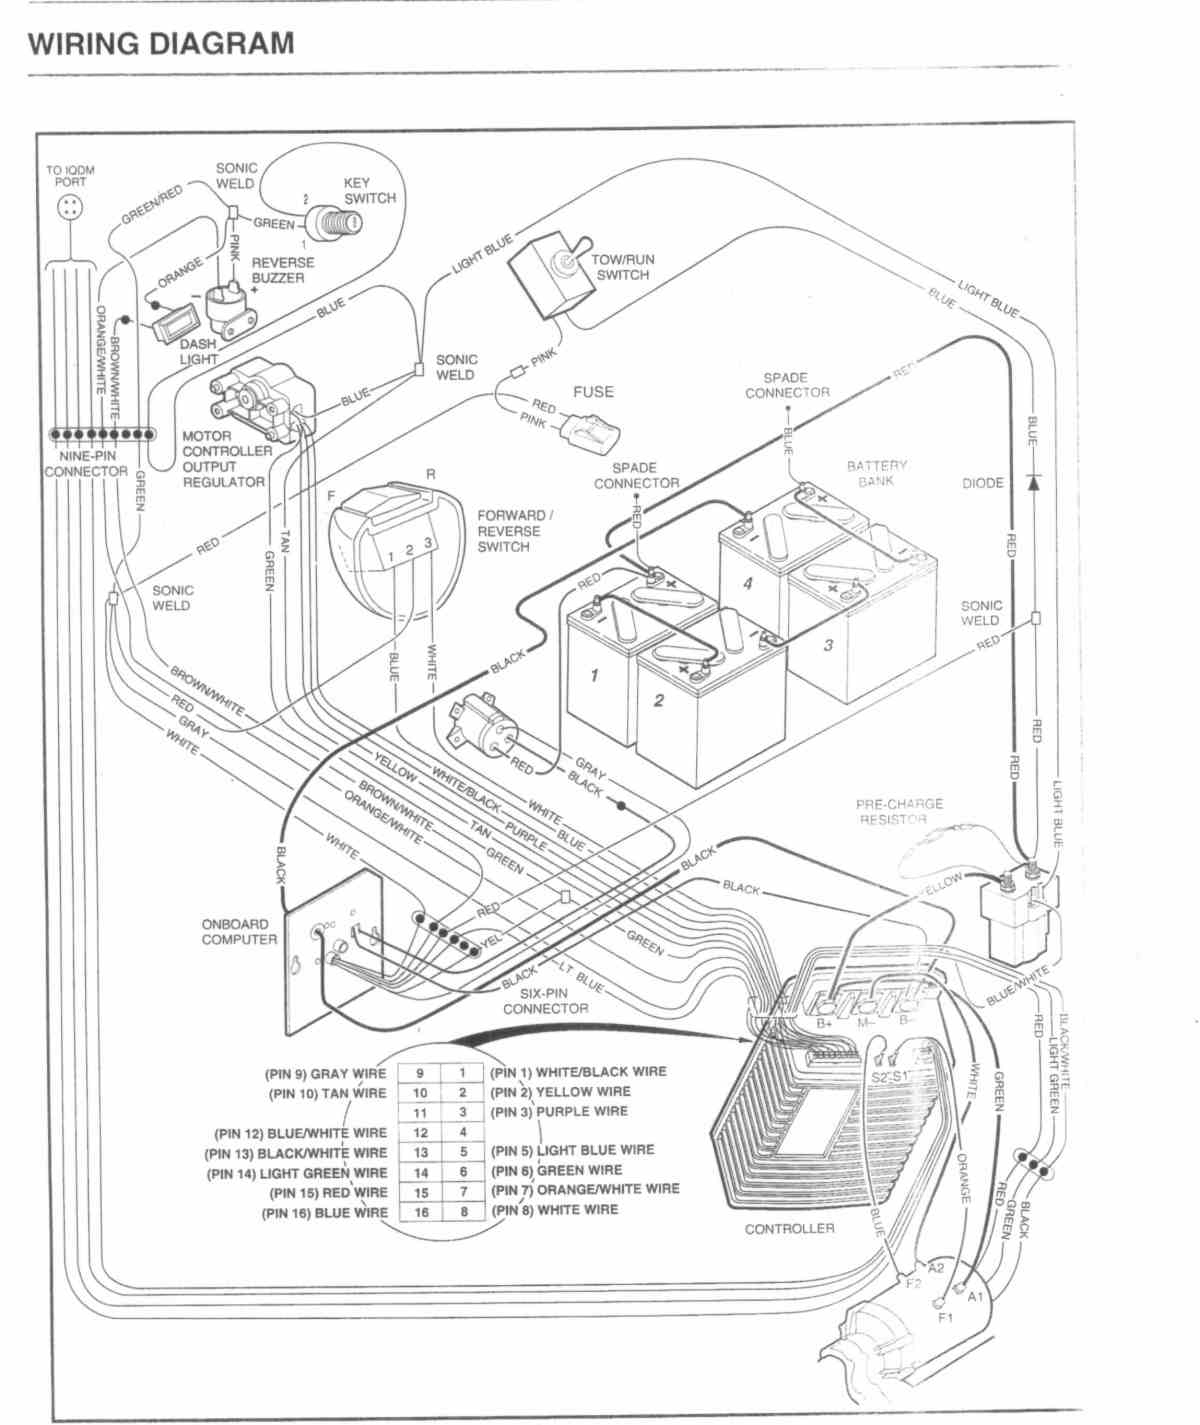 2009 club car precedent wiring diagram -  wiring diagram for precedent  schematic diagram datawiring diagram for precedent wiring diagram  schematics wiring